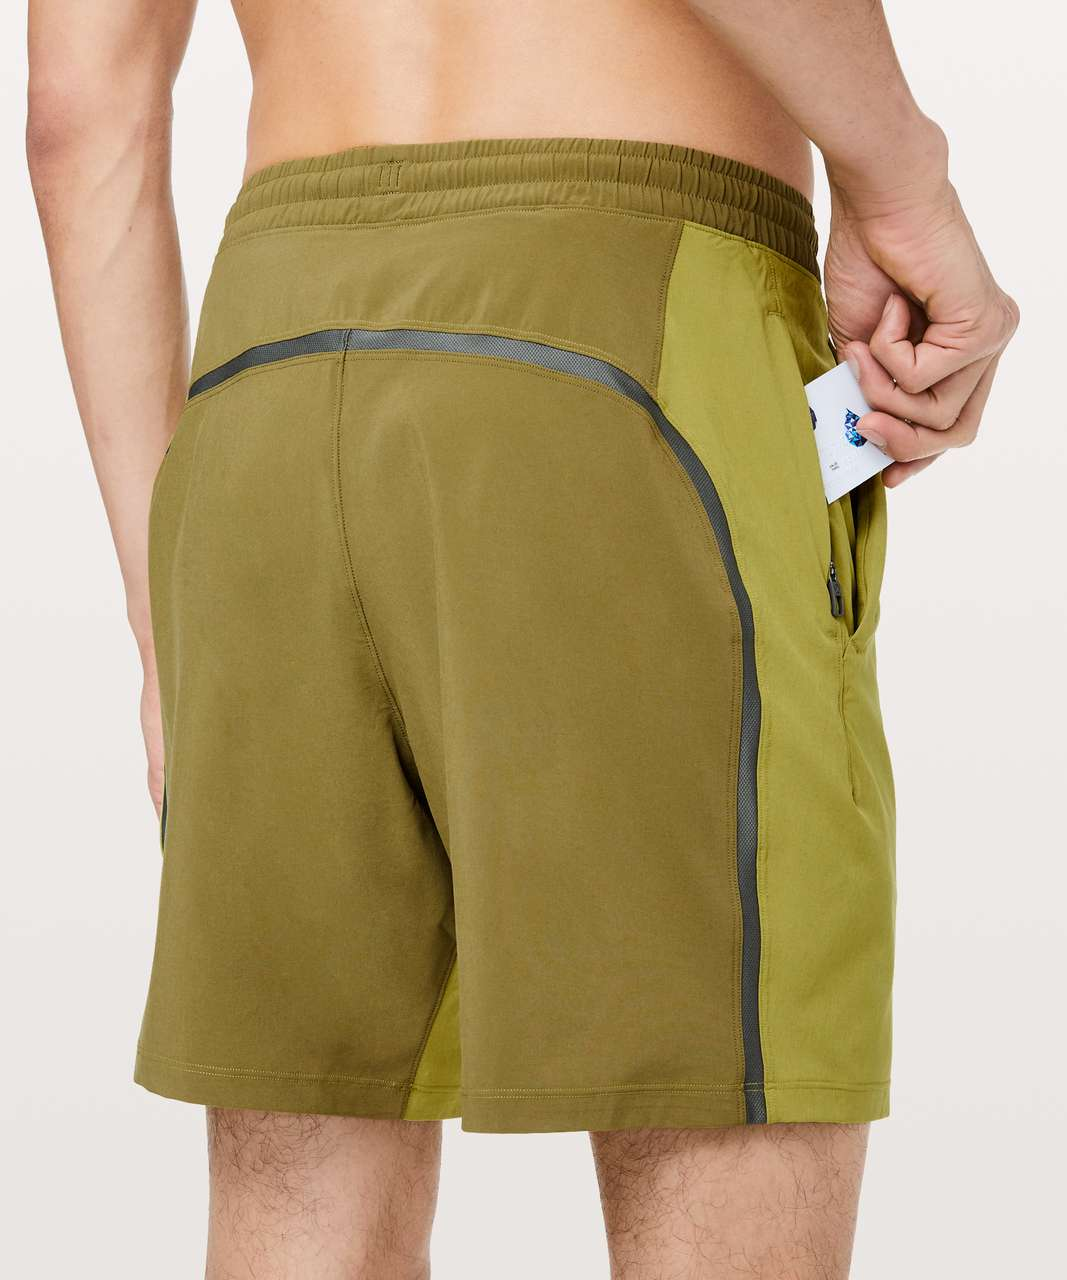 "Lululemon Pace Breaker Short 7"" *Linerless - Golden Lime / Mossy / Grey Sage"